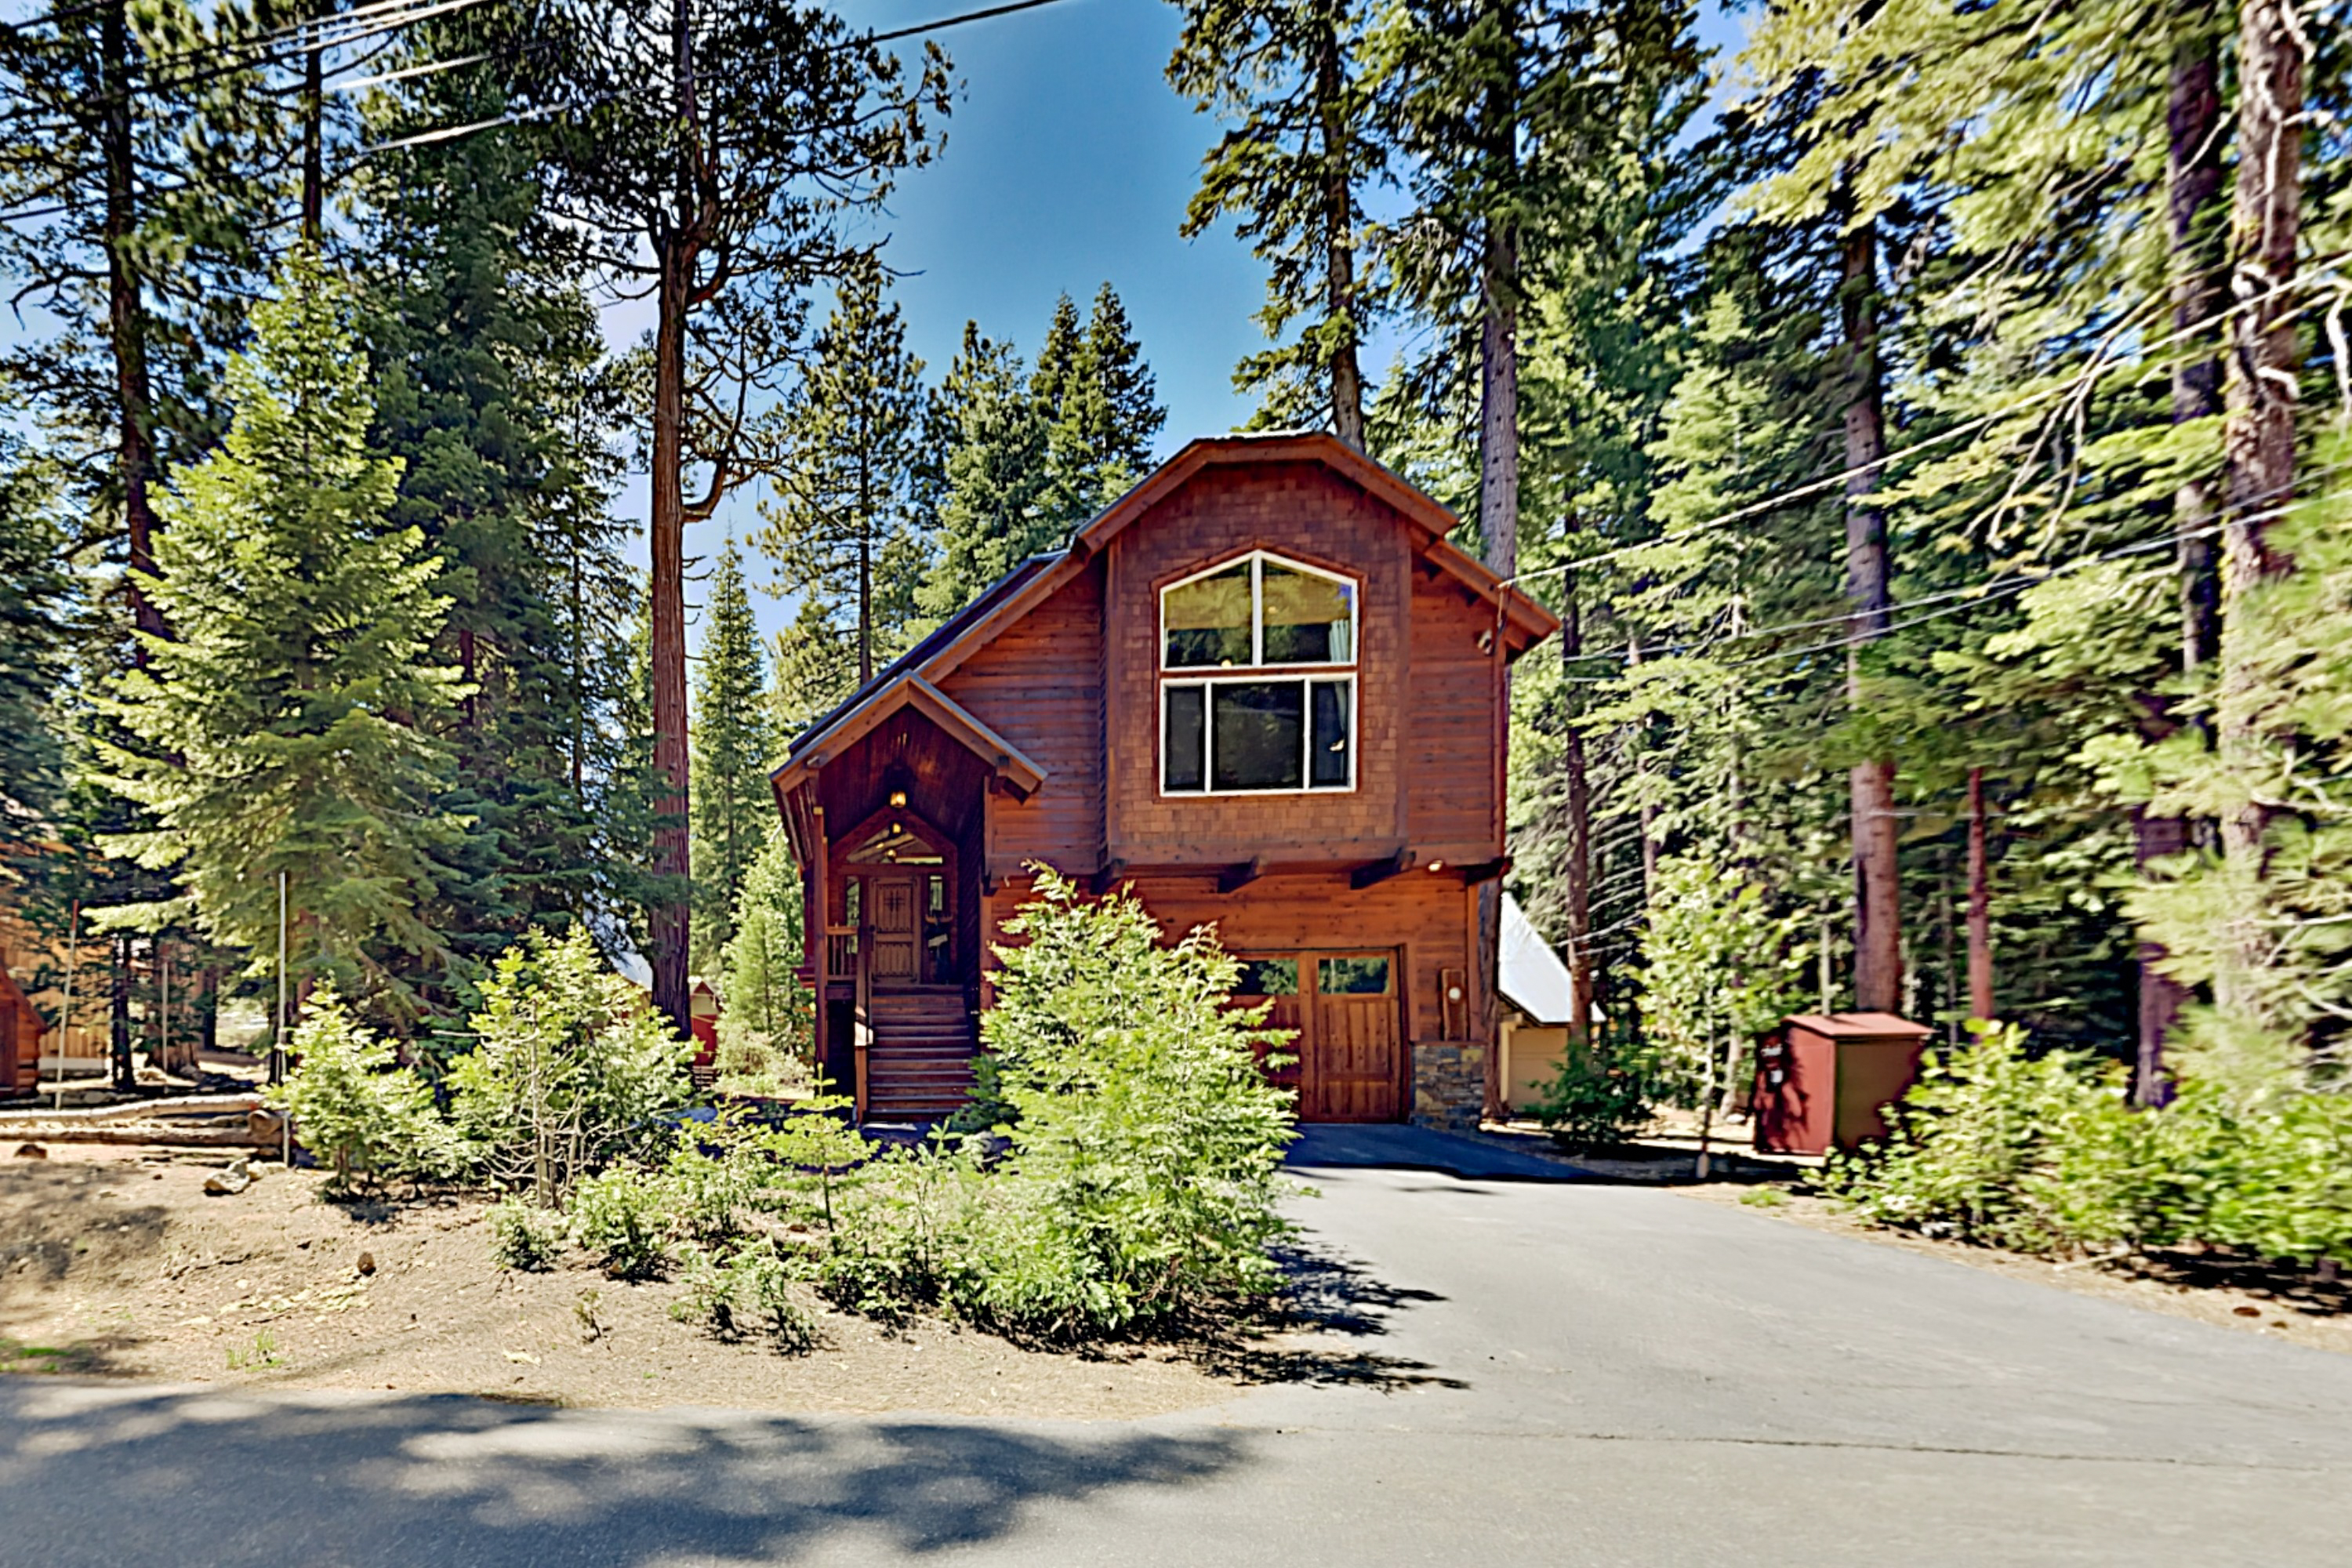 Tahoma CA Vacation Rental With TurnKey, you